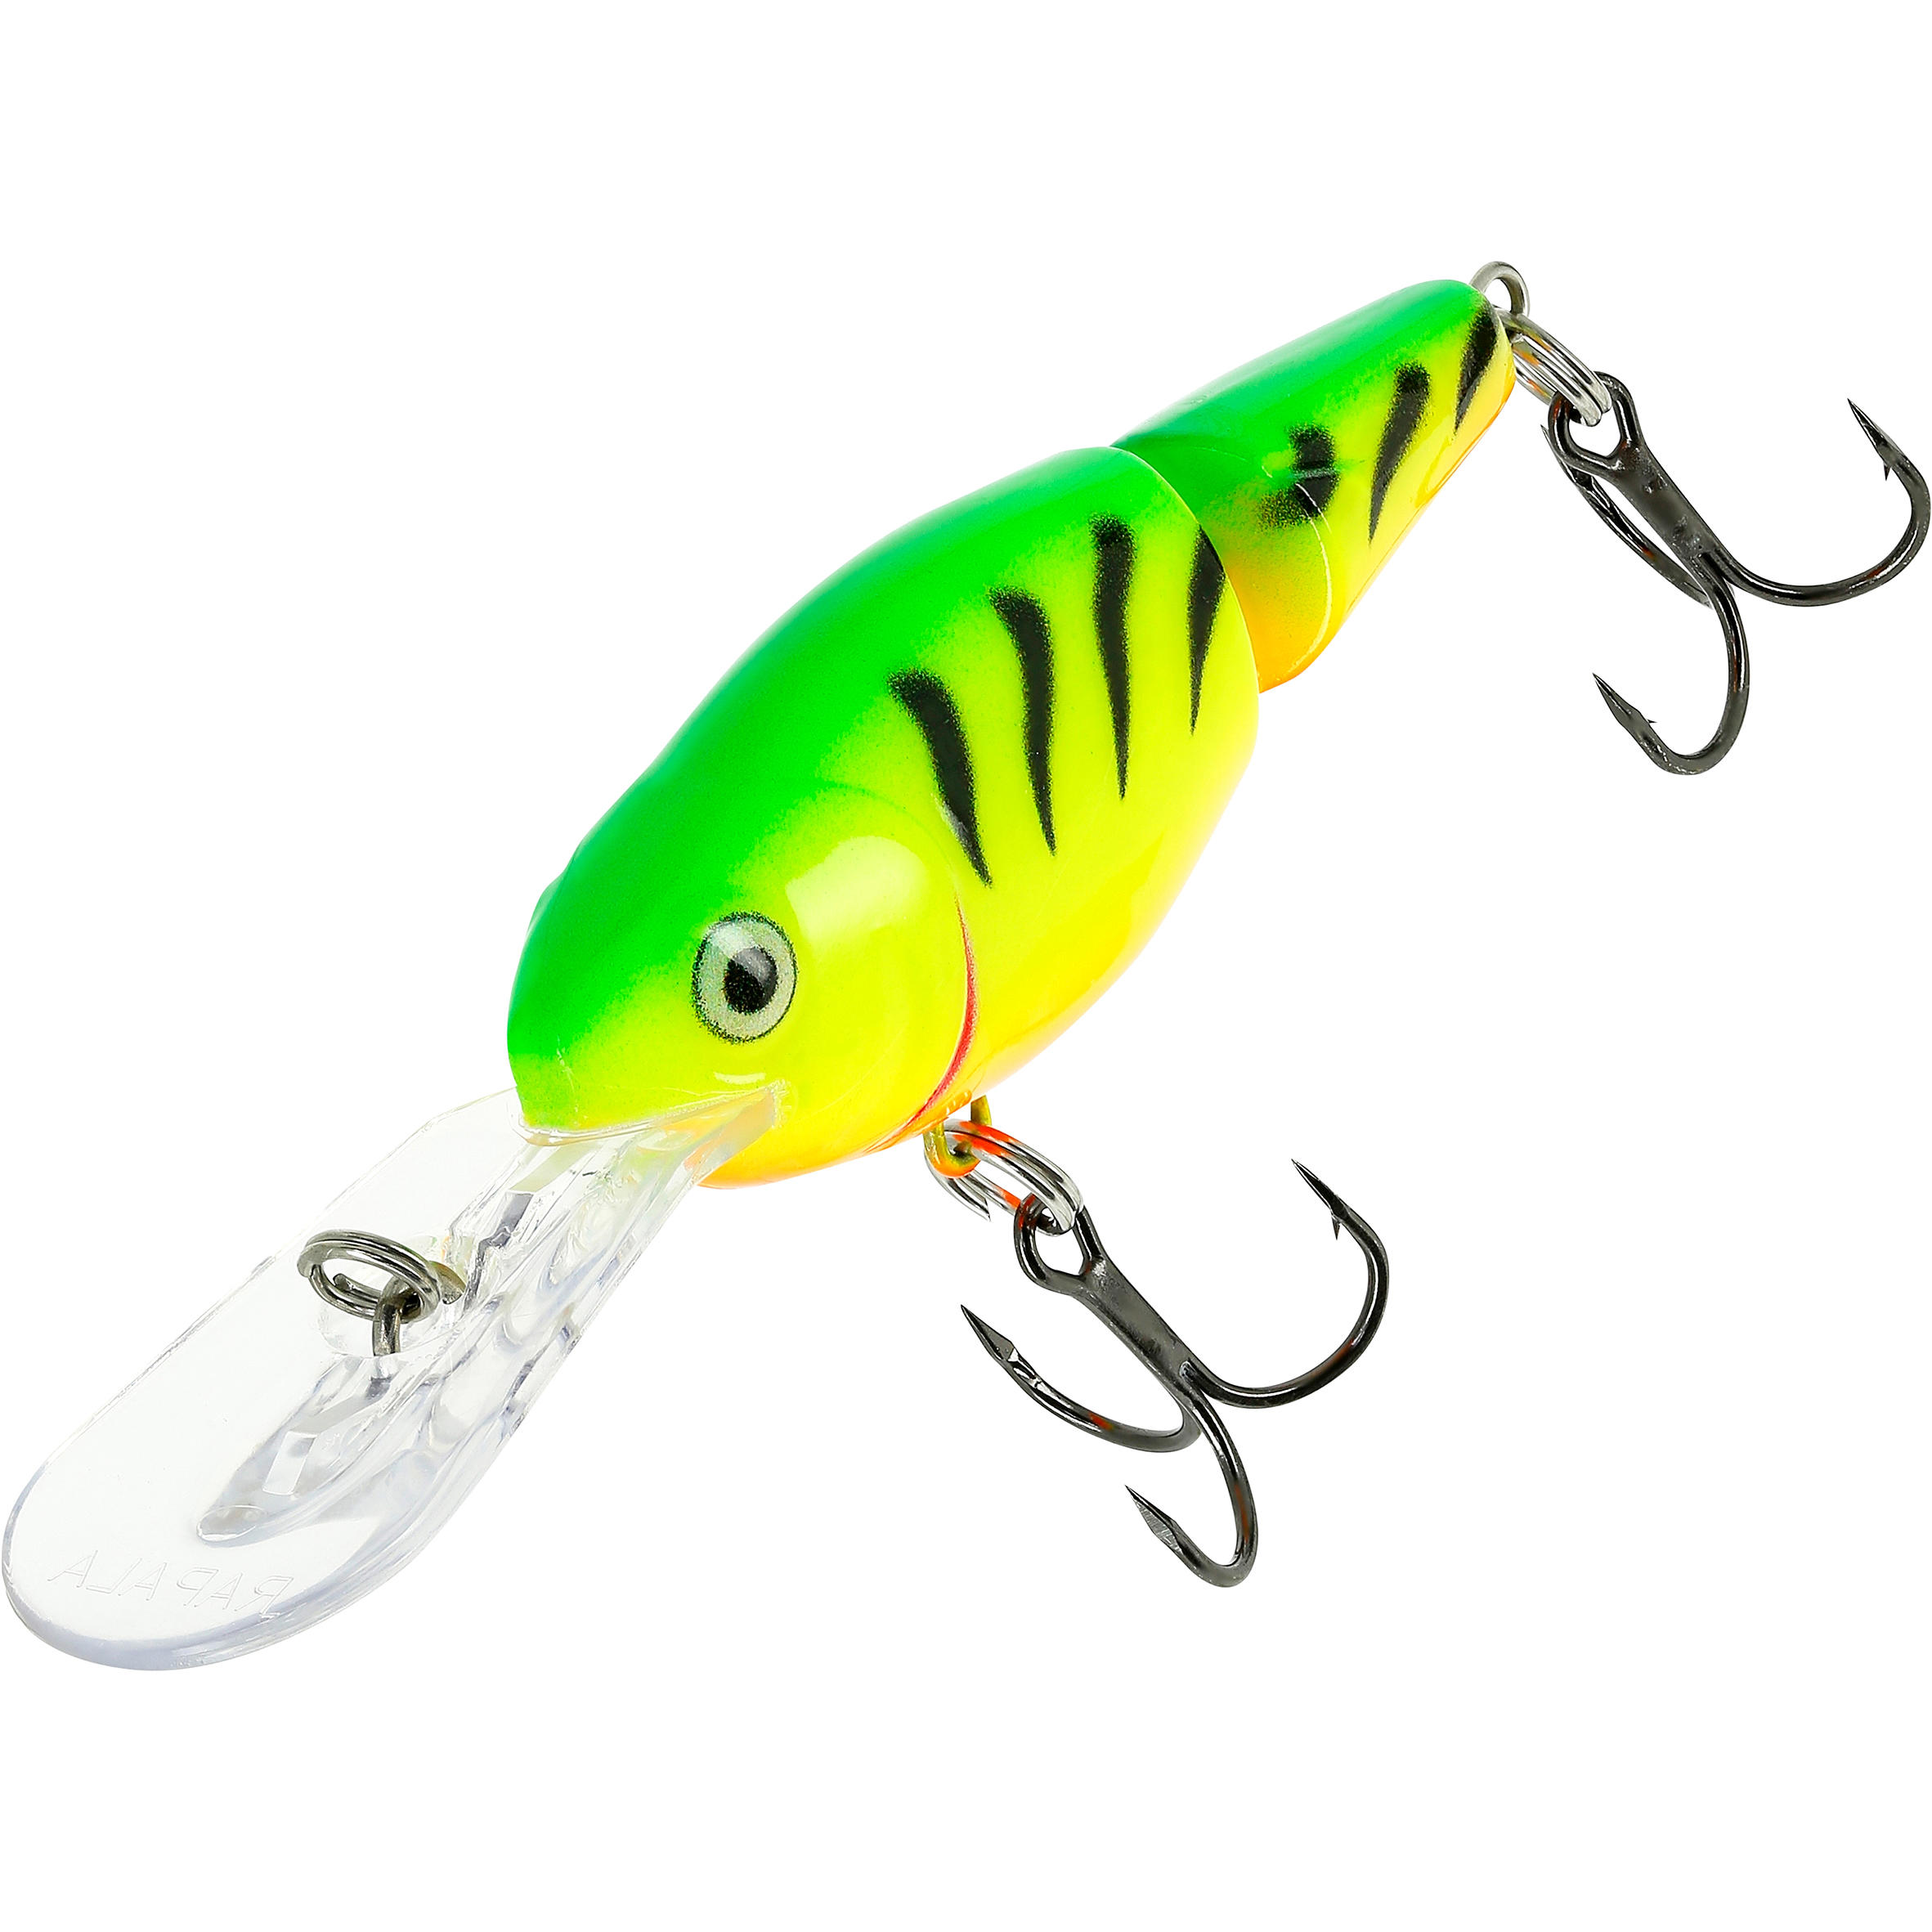 Rapala Jointed Shad Rap - 5 cm - 8 g - FT